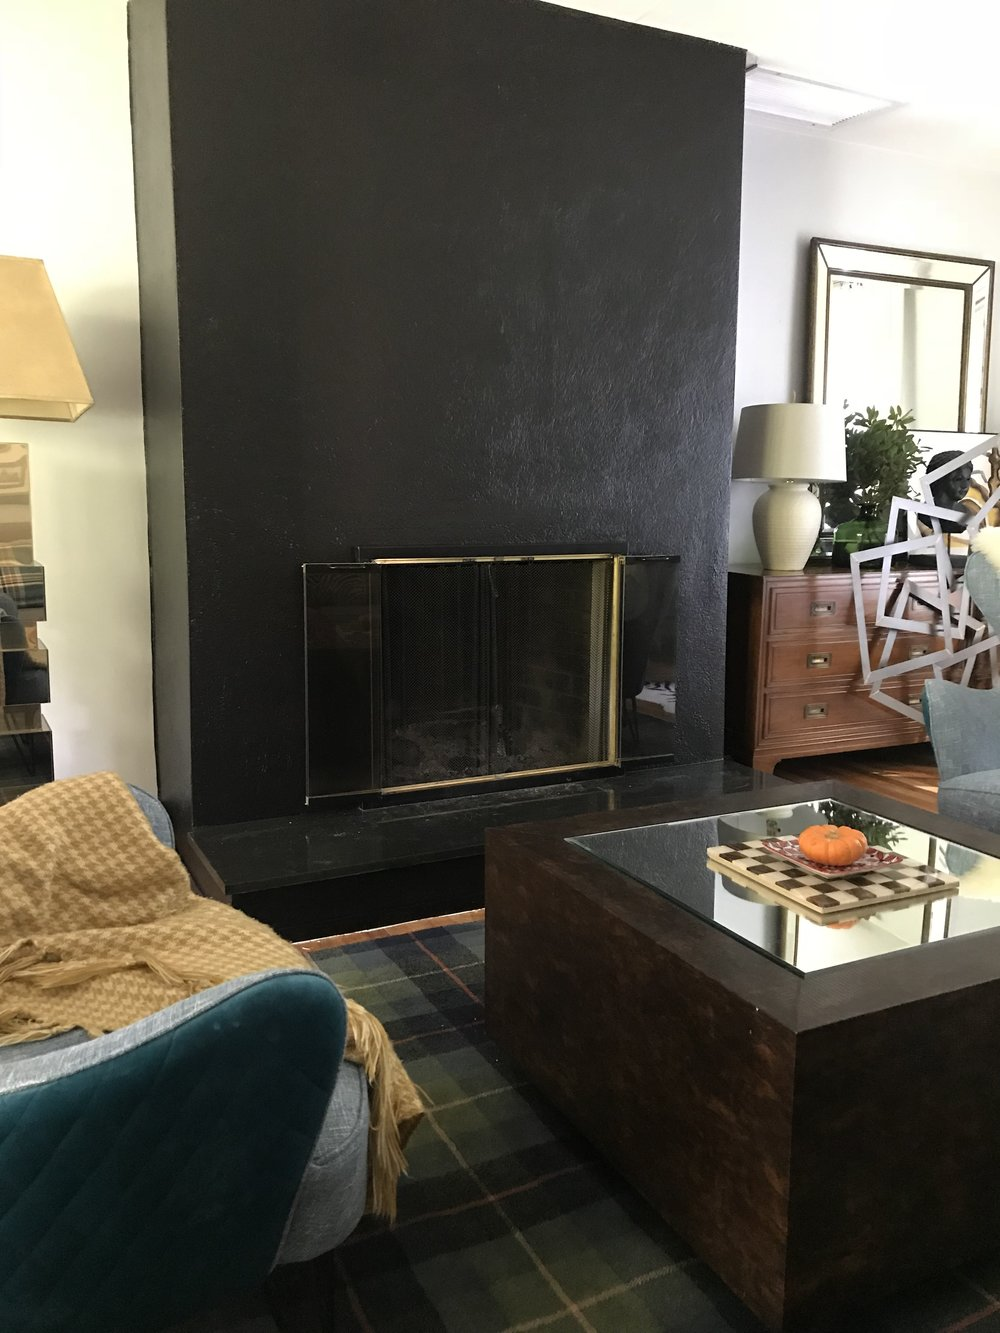 One Room challenge painting the fireplace black by the rath project